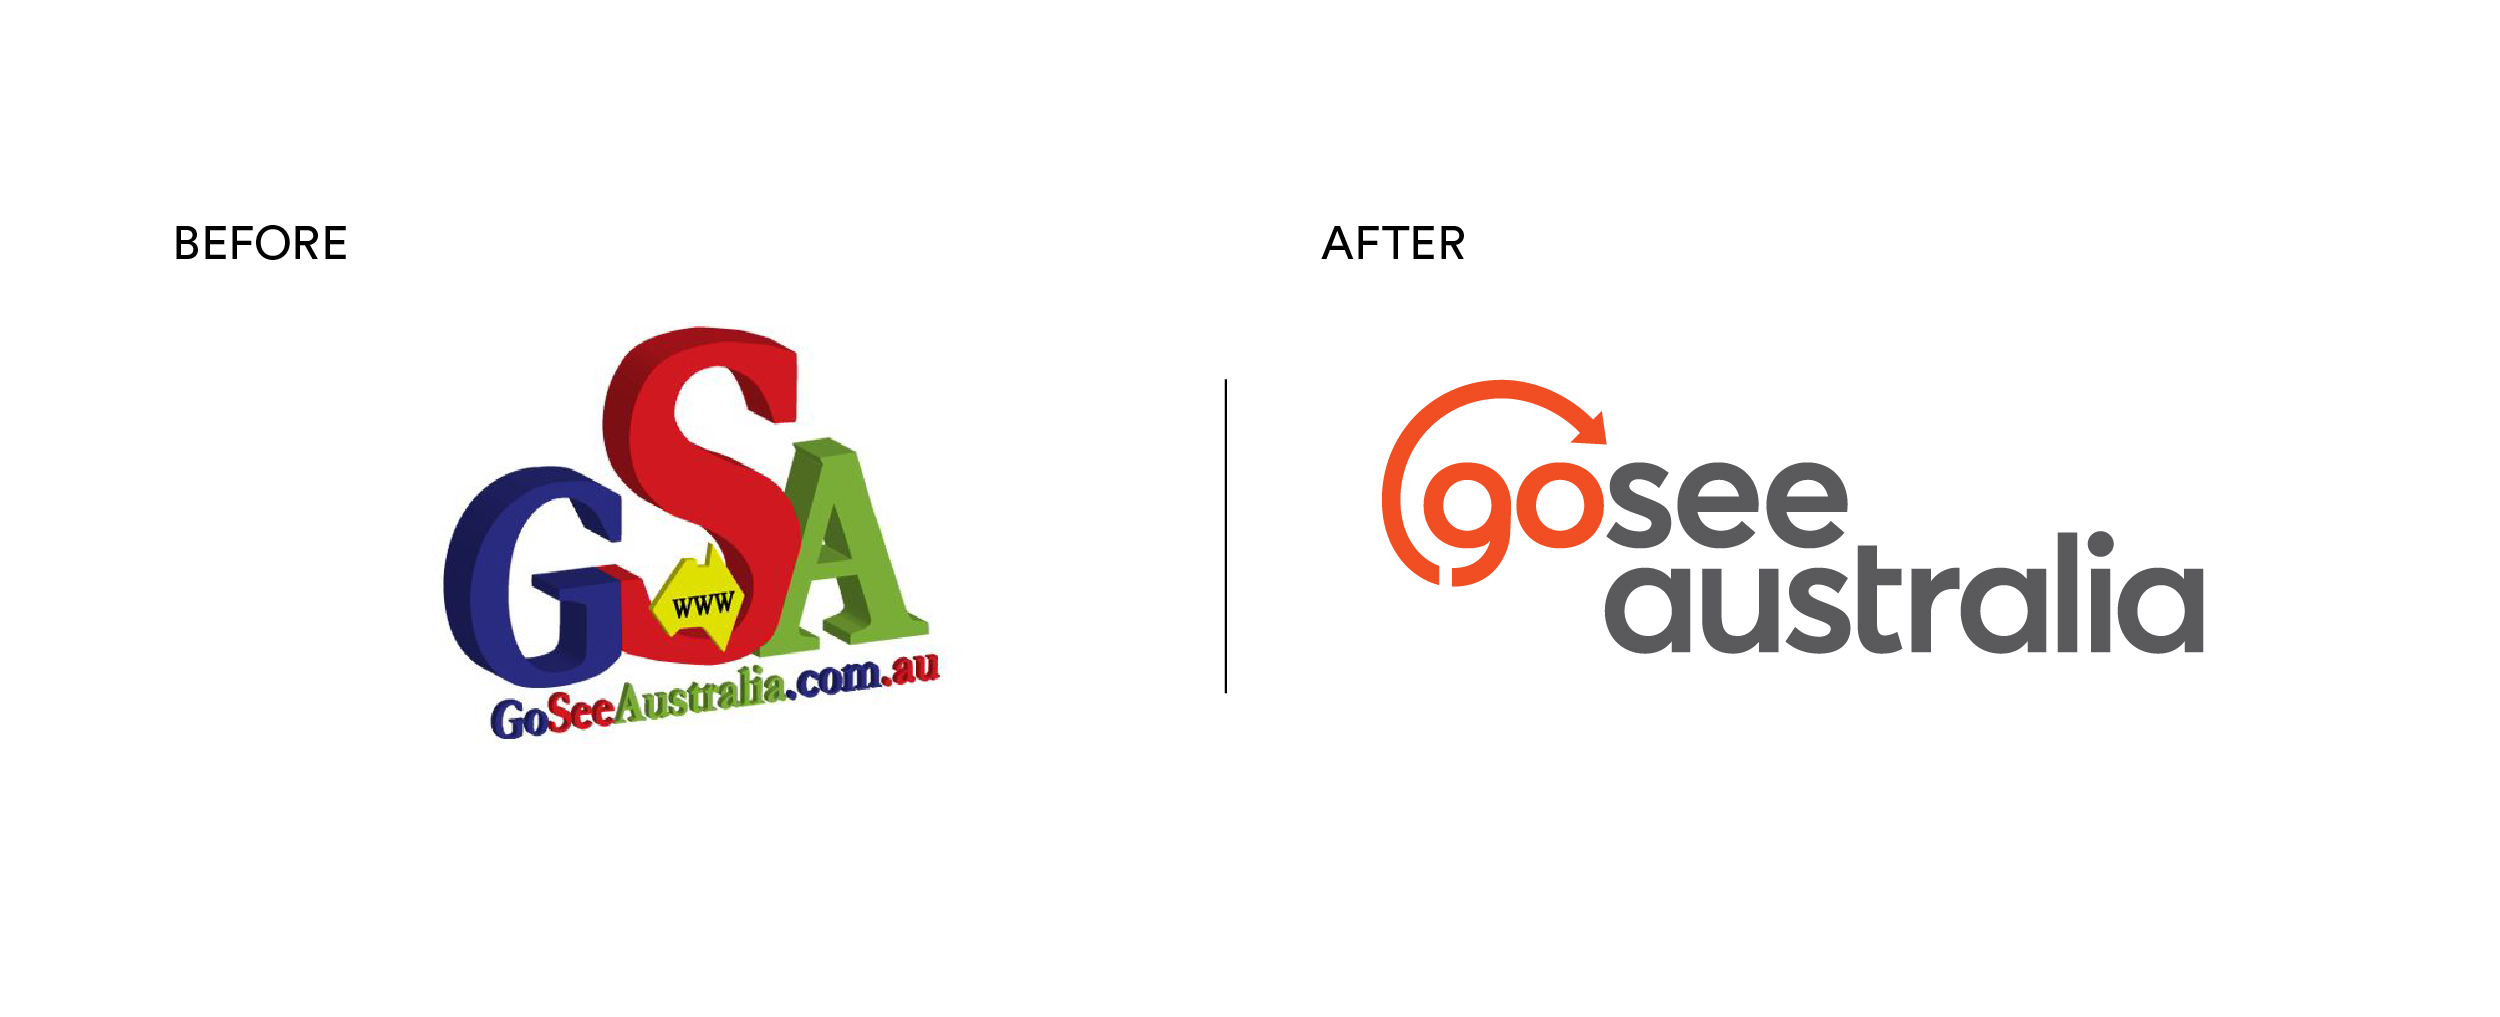 Go See Australia Brand Mark before and after brand refresh